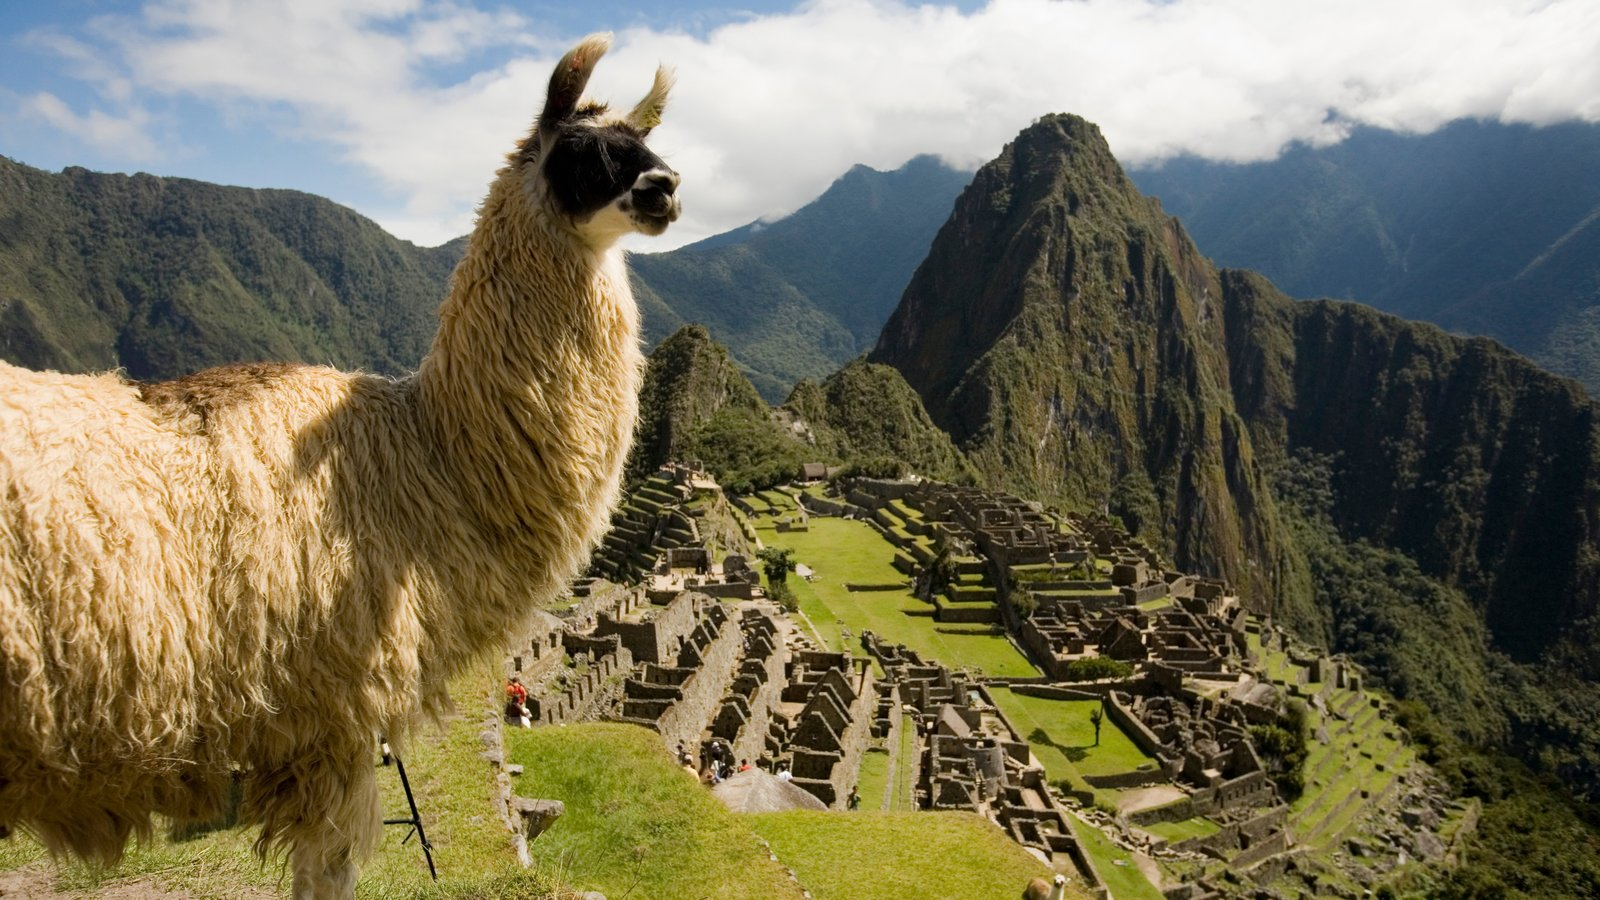 Huayna Picchu which includes animals, mountains and tranquil scenes